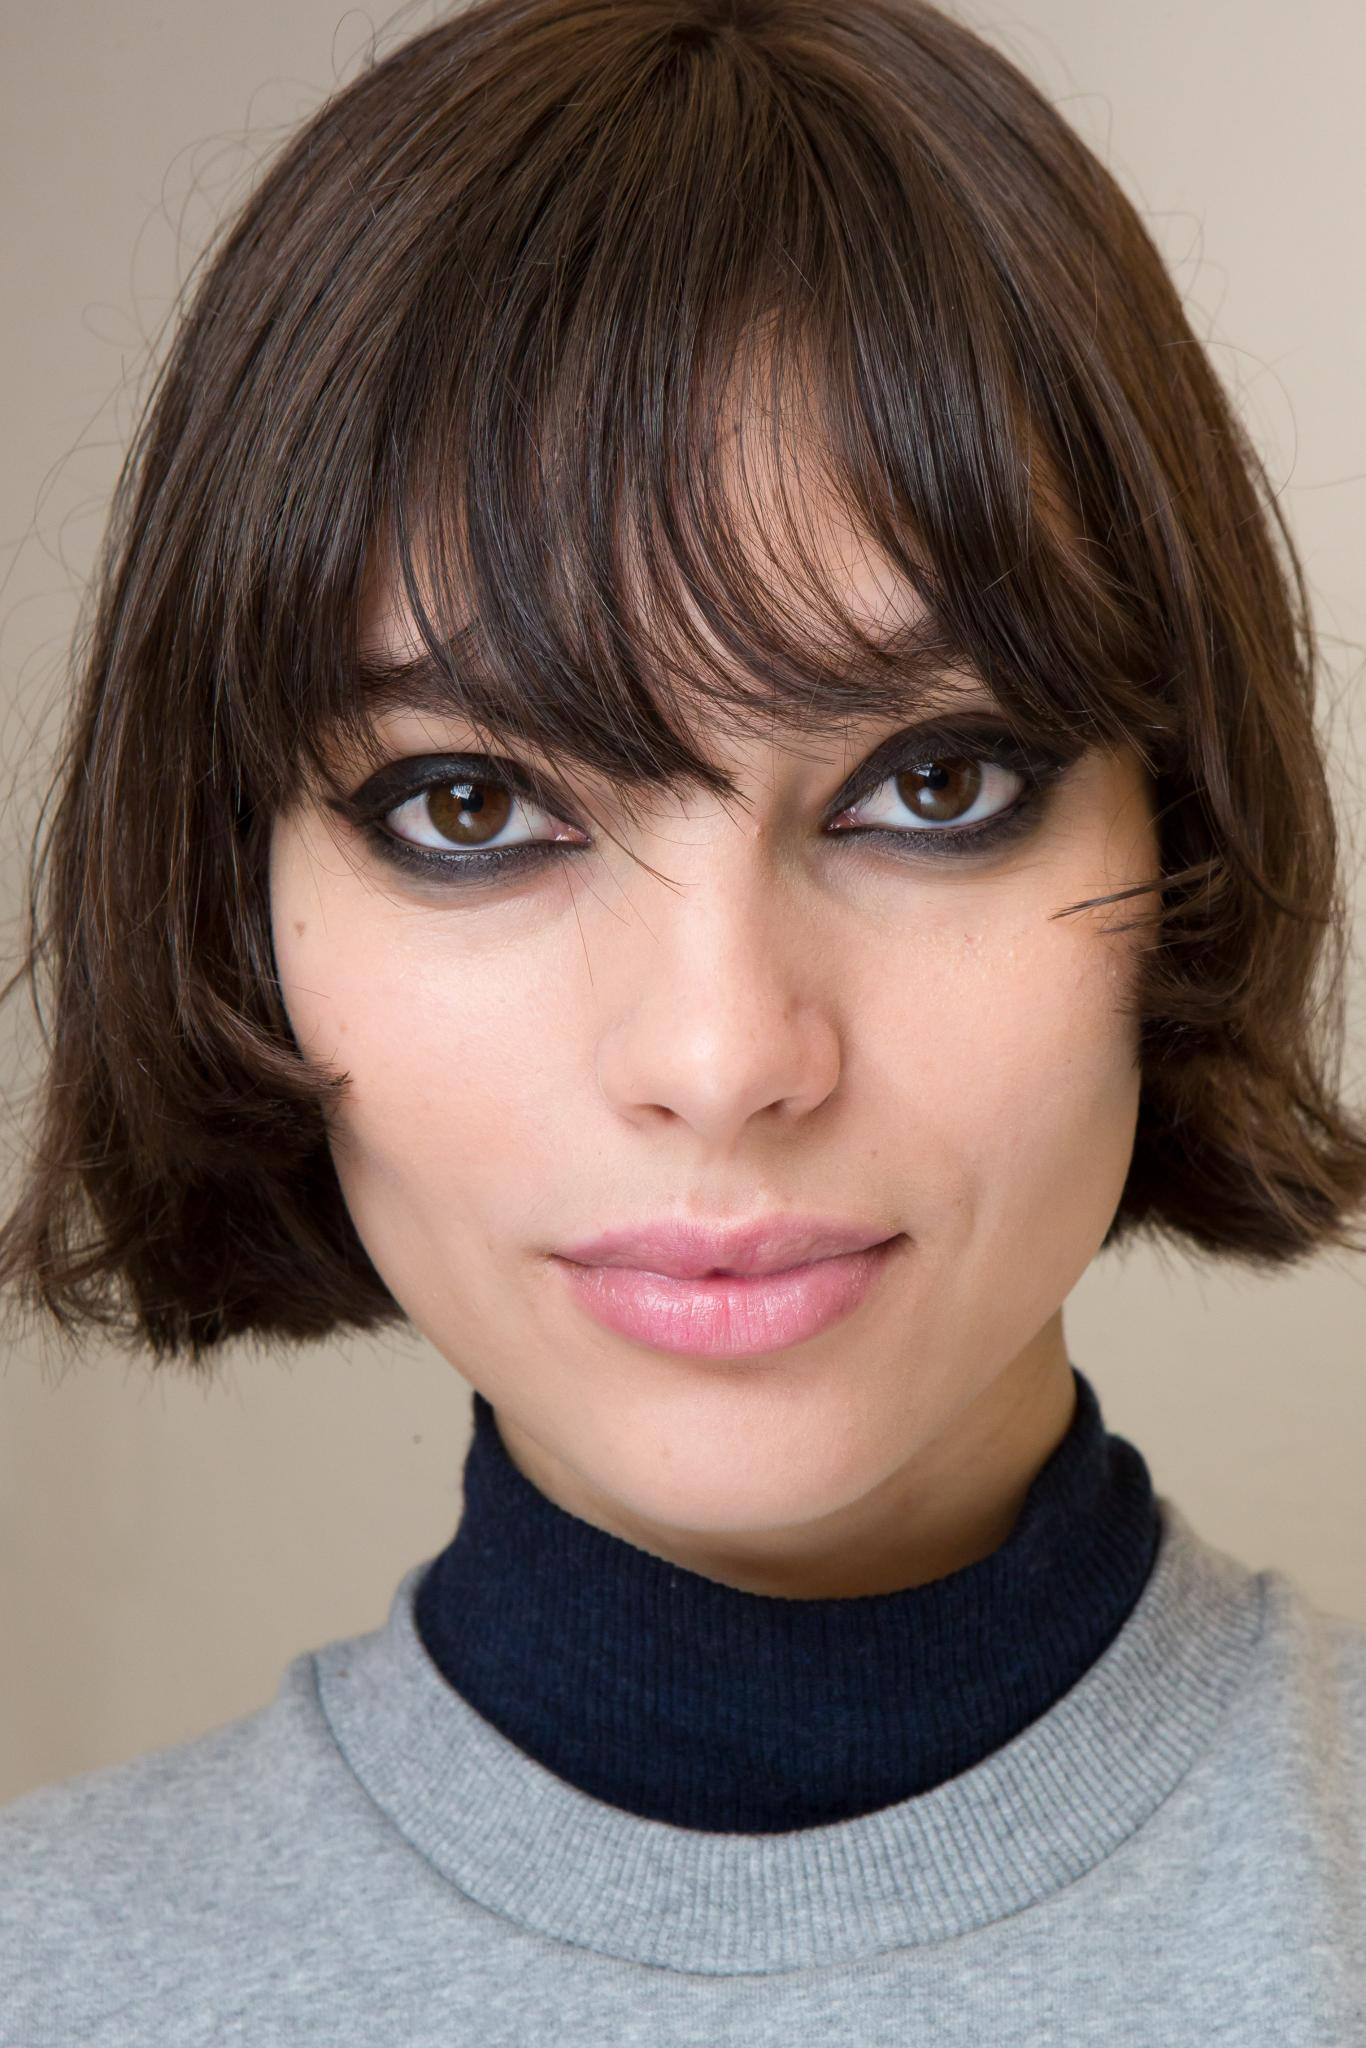 Popular Short Haircuts: The Top 3 Looks To Screencap Now